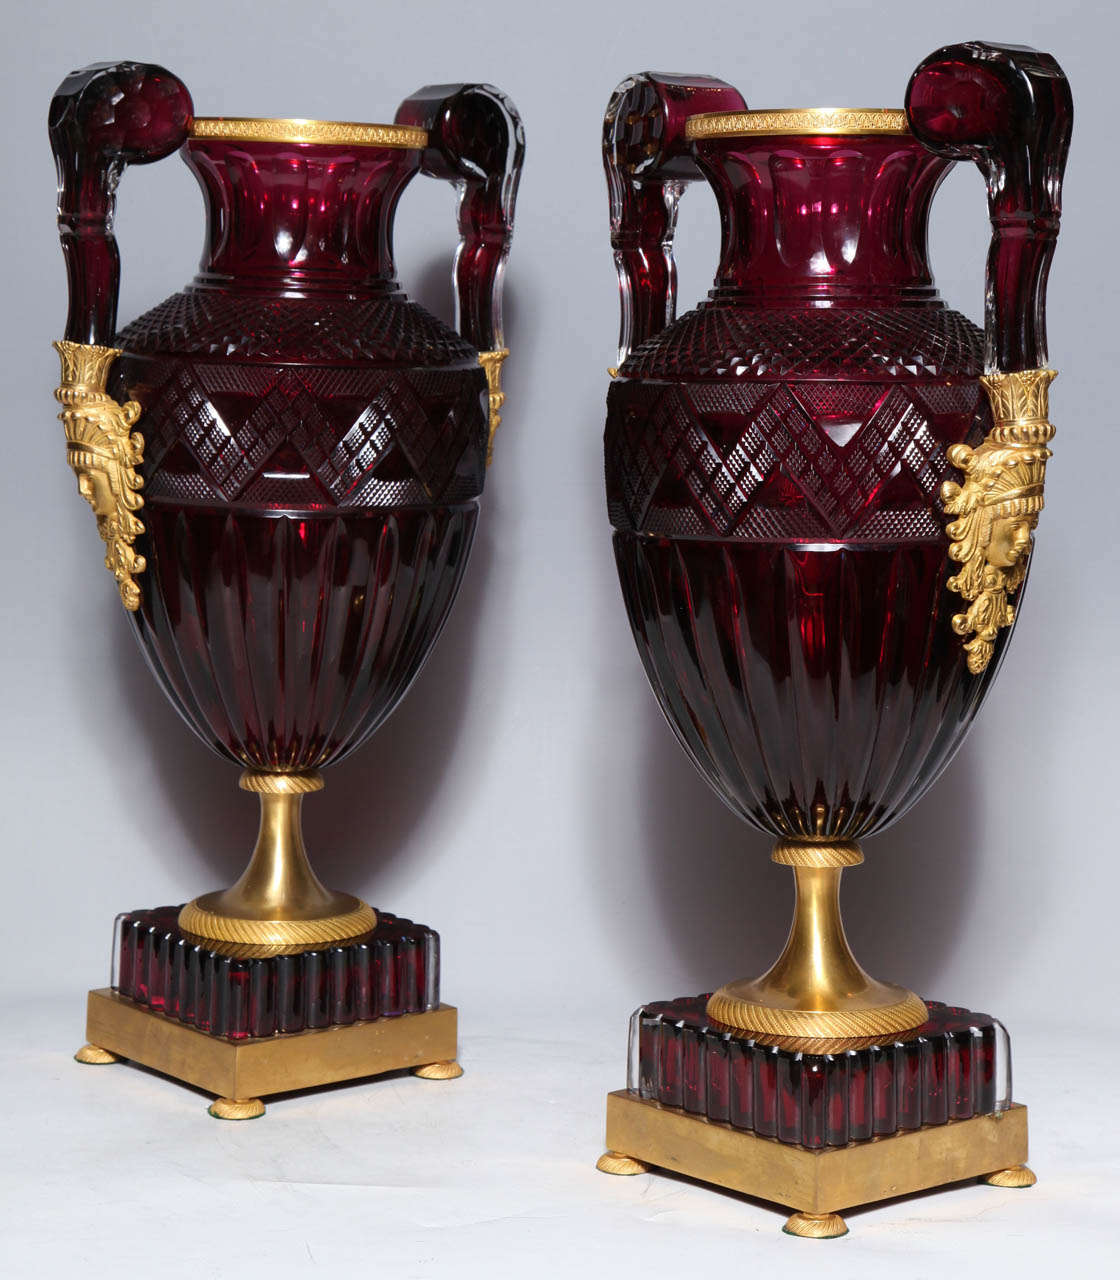 Empire A Magnificent Pair of Russian Imperial Ruby Glass Vases with Gilded Bronze Mounts For Sale